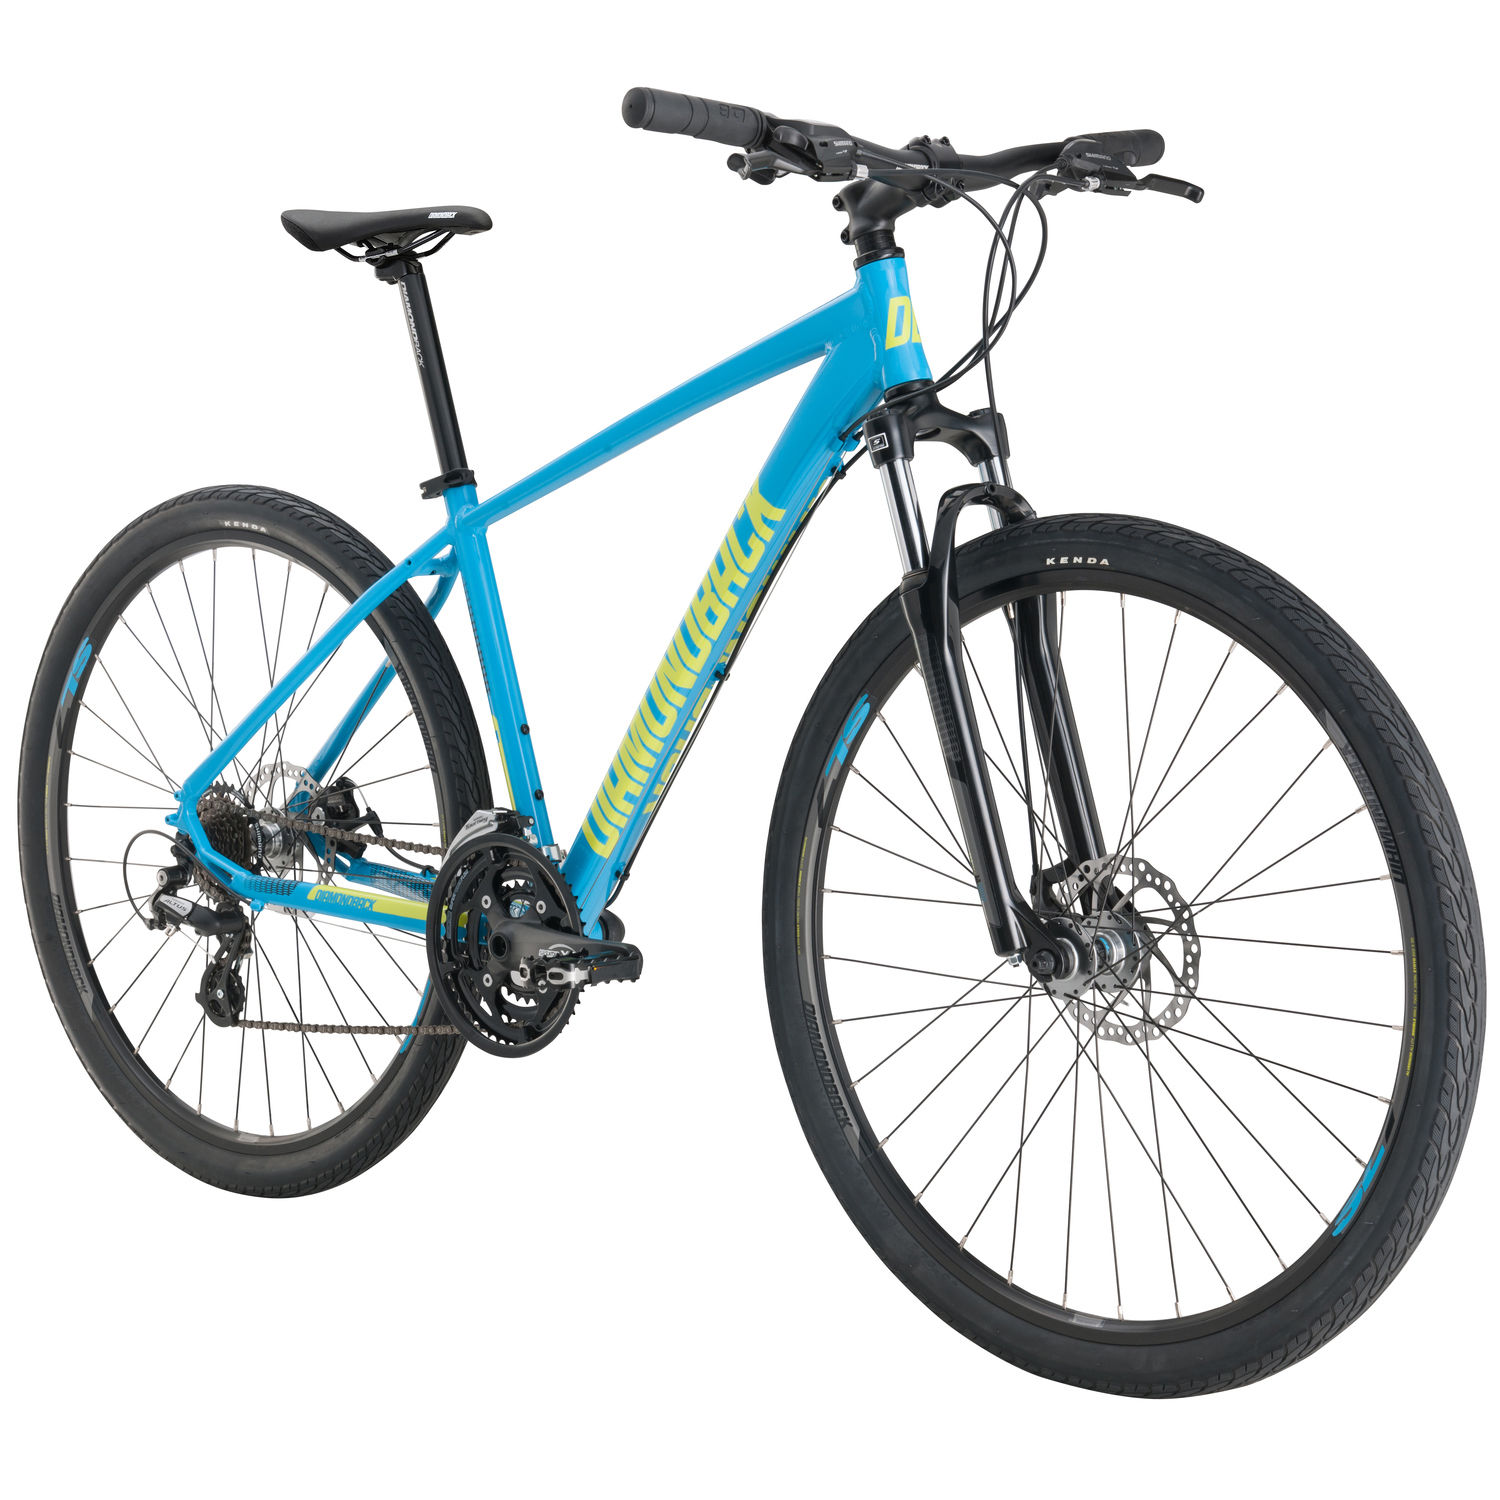 Diamondback 2017 Trace Mountain Bike